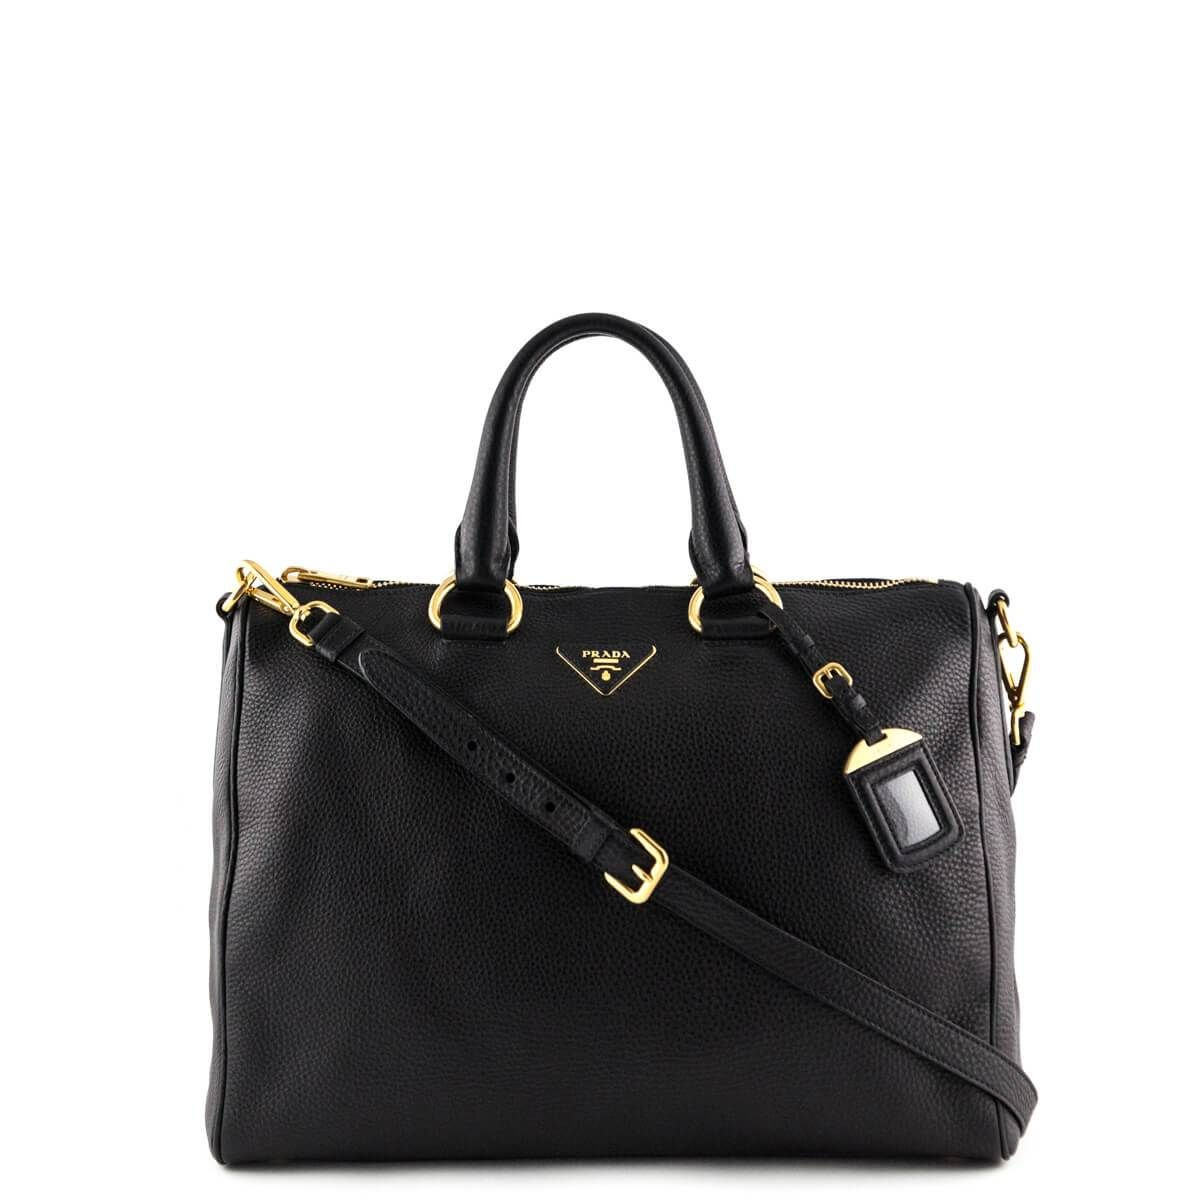 41b4bb5030f51e Prada Black Vitello Daino East West Satchel - LOVE that BAG - Preowned  Authentic Designer Handbags